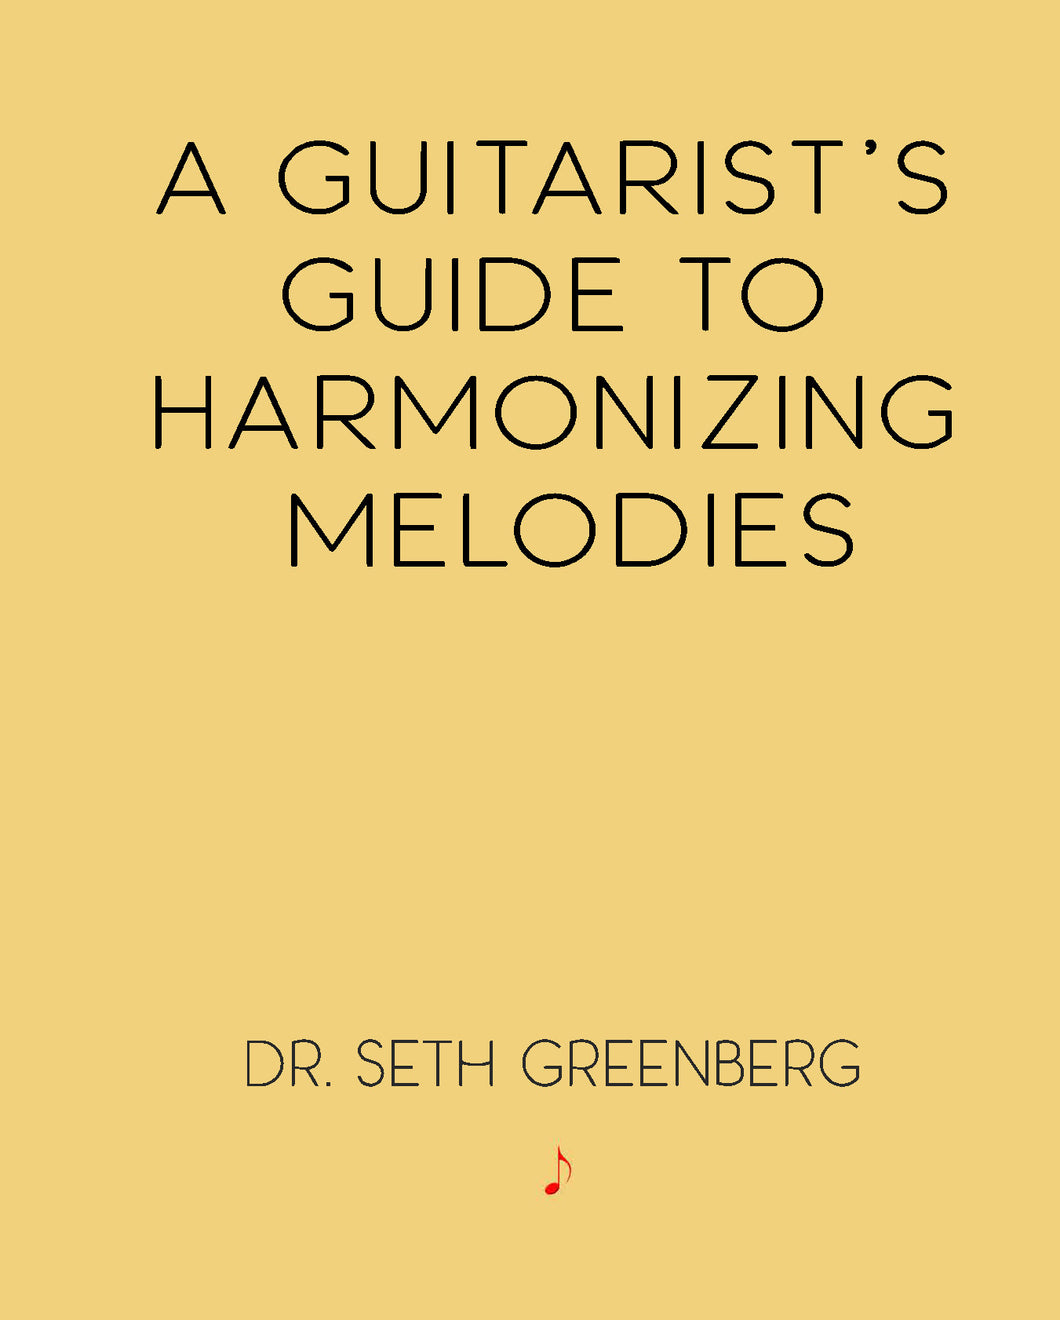 A Guitarist's Guide to Harmonizing Melodies